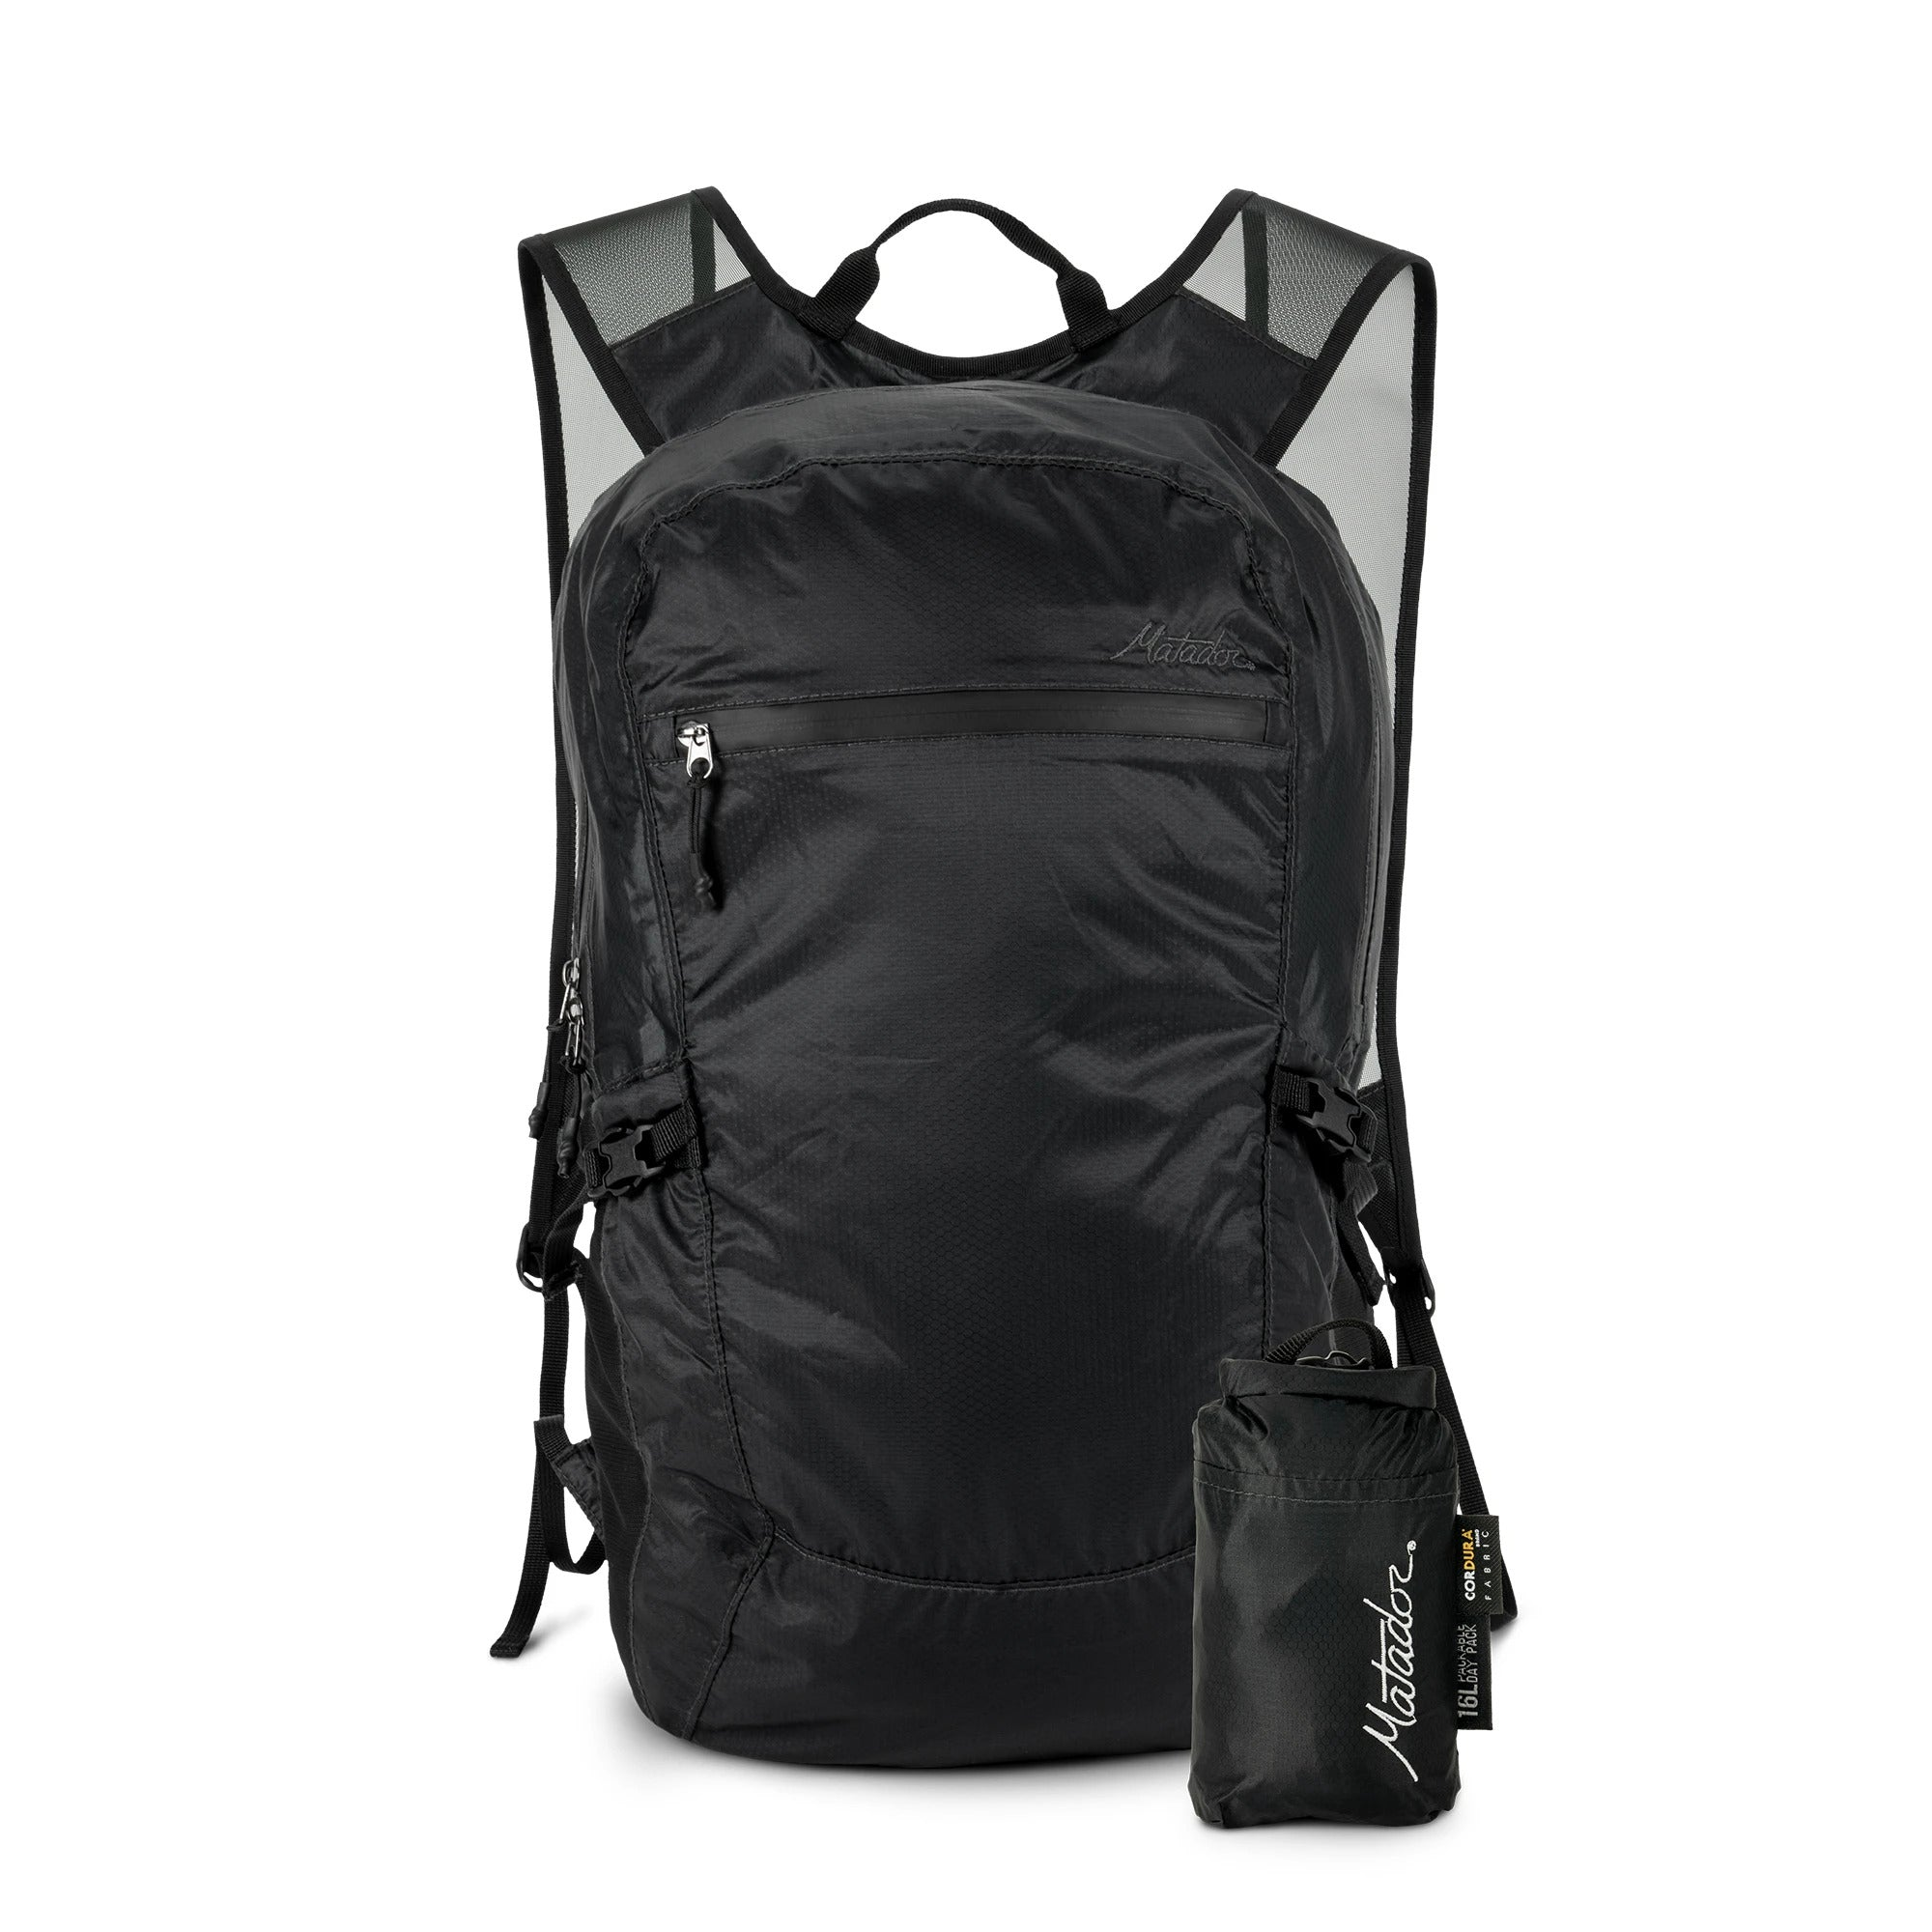 Freefly16 Packable Backpack